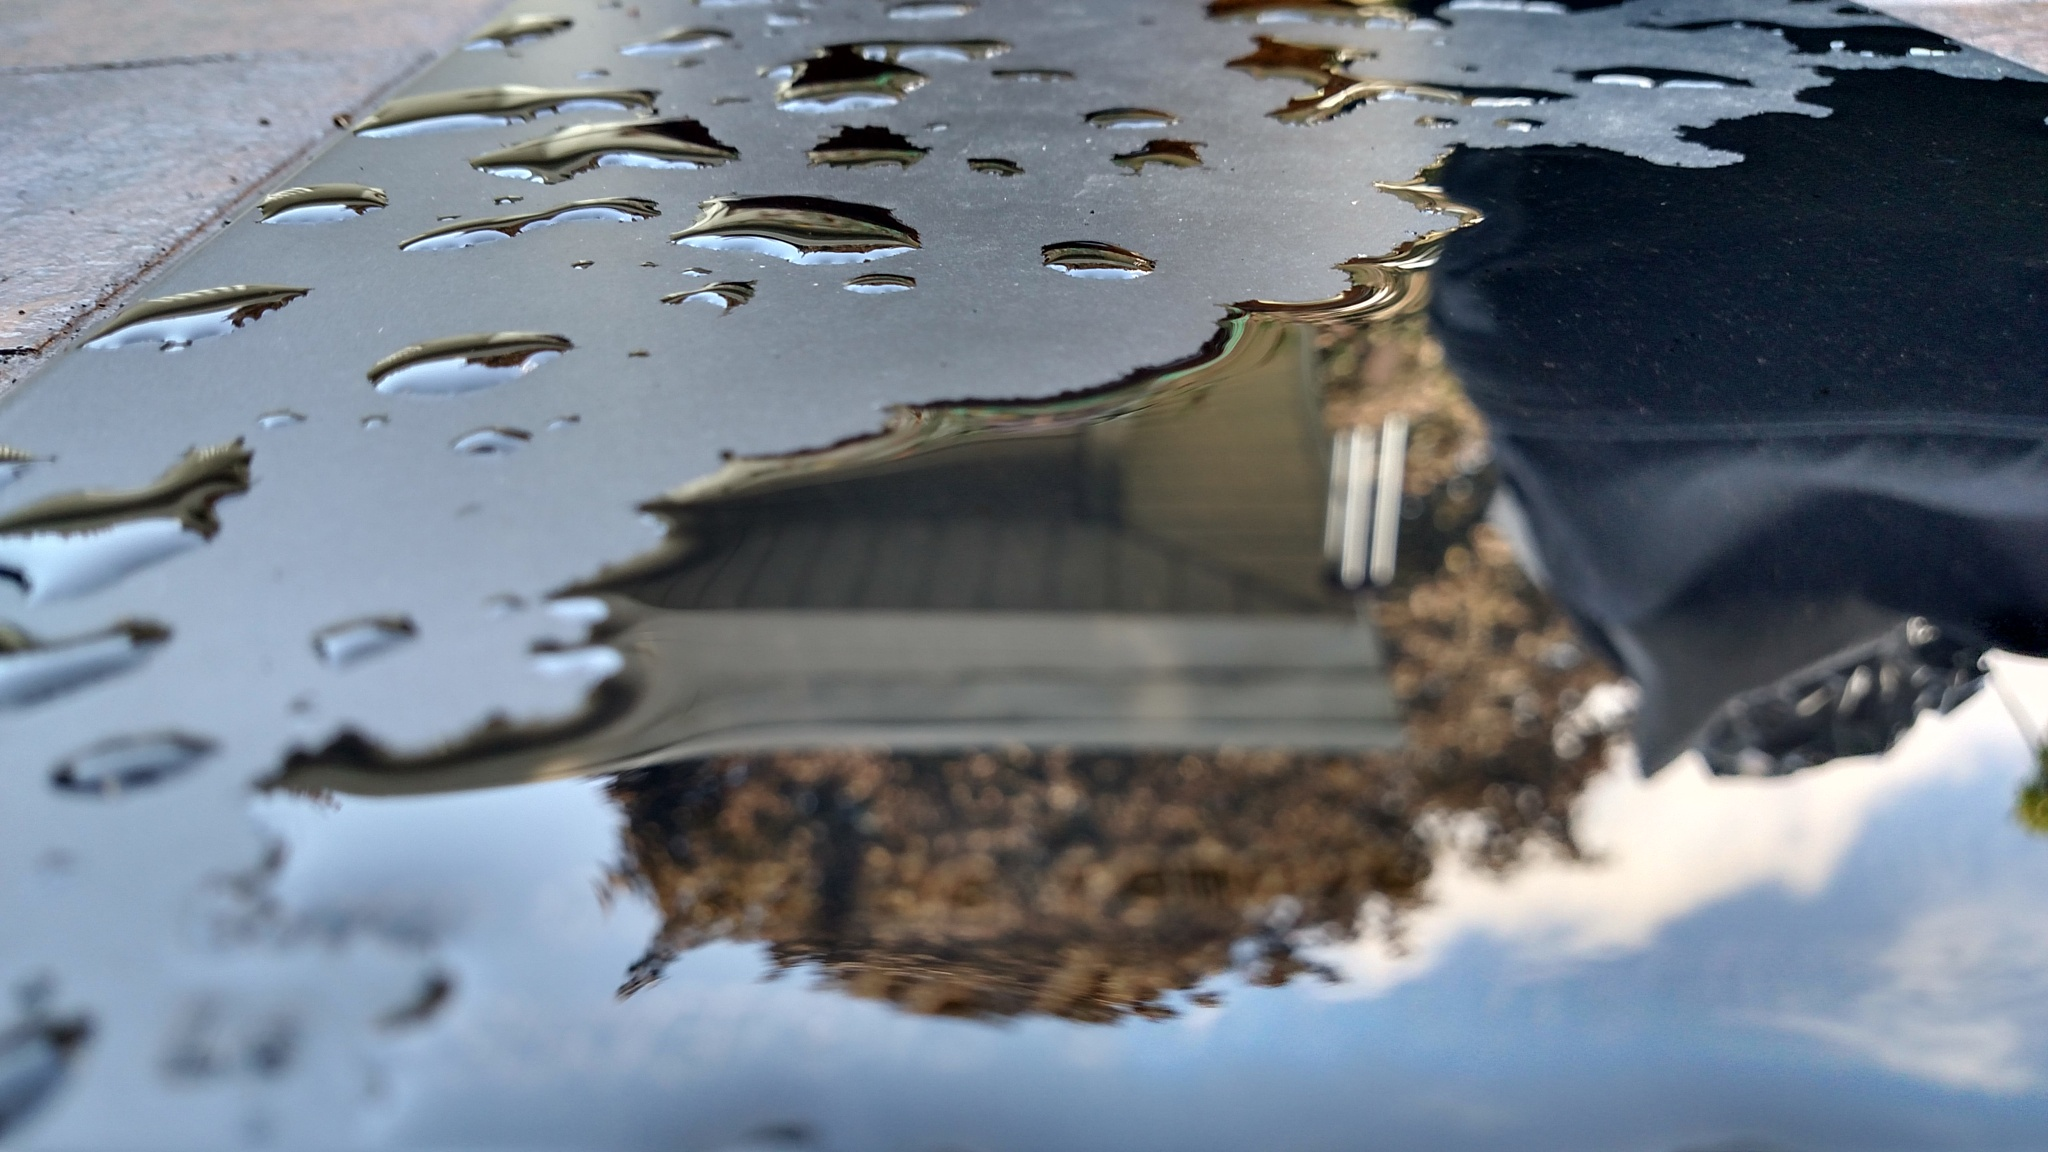 Reflections by whitehawk43